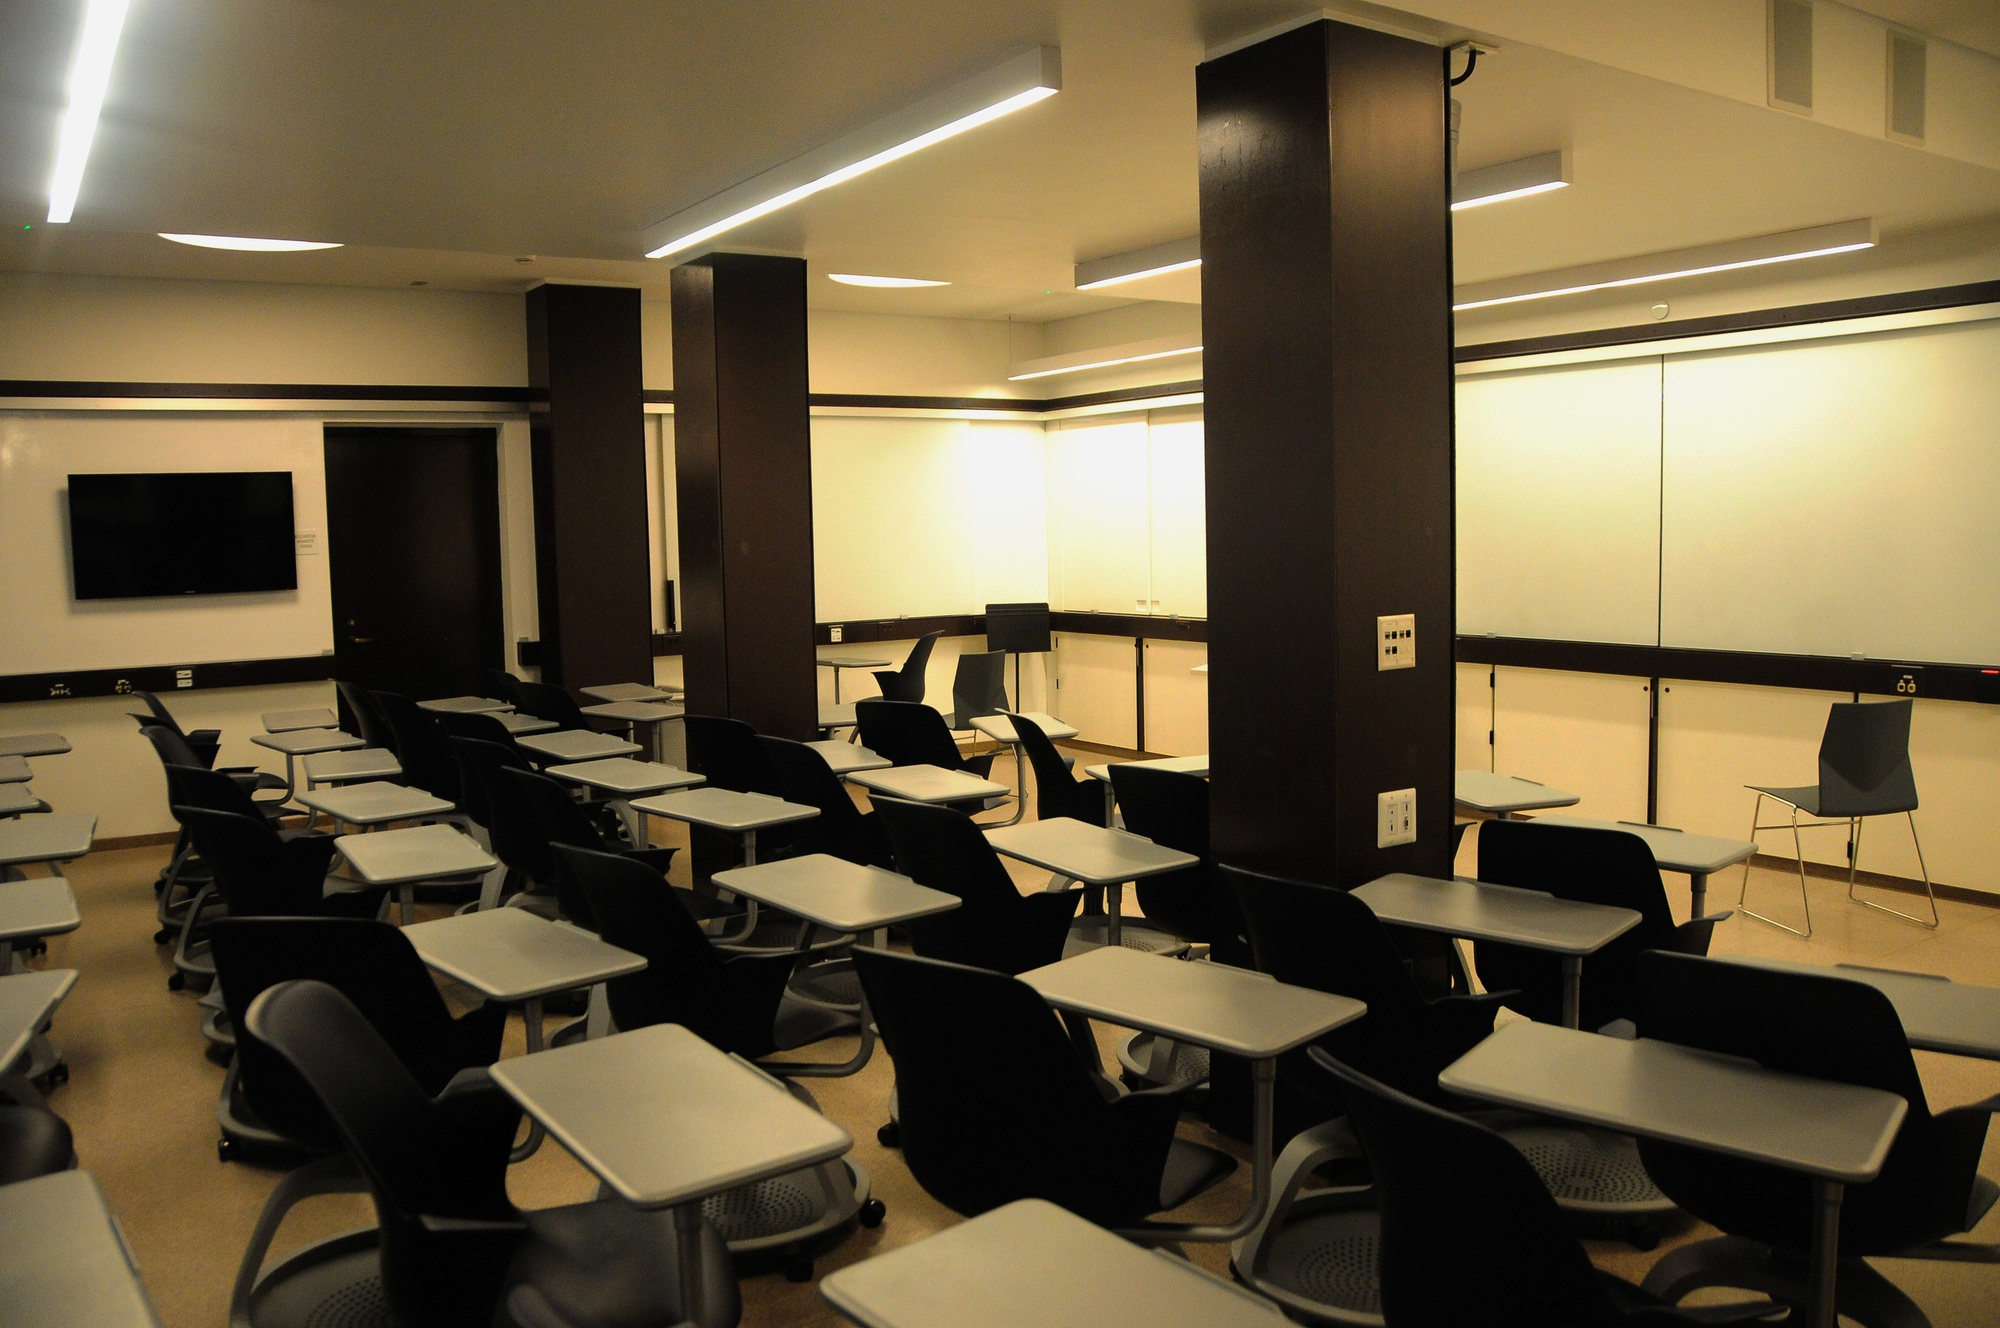 """The """"smart classroom"""" in Stone Hall of Quincy House contains improved technology, including touch-sensitive tablets and cameras. Renovations at Quincy House are a part of Harvard's attempt to foster learning communities throughout the houses in an era of rapid technological advancement."""